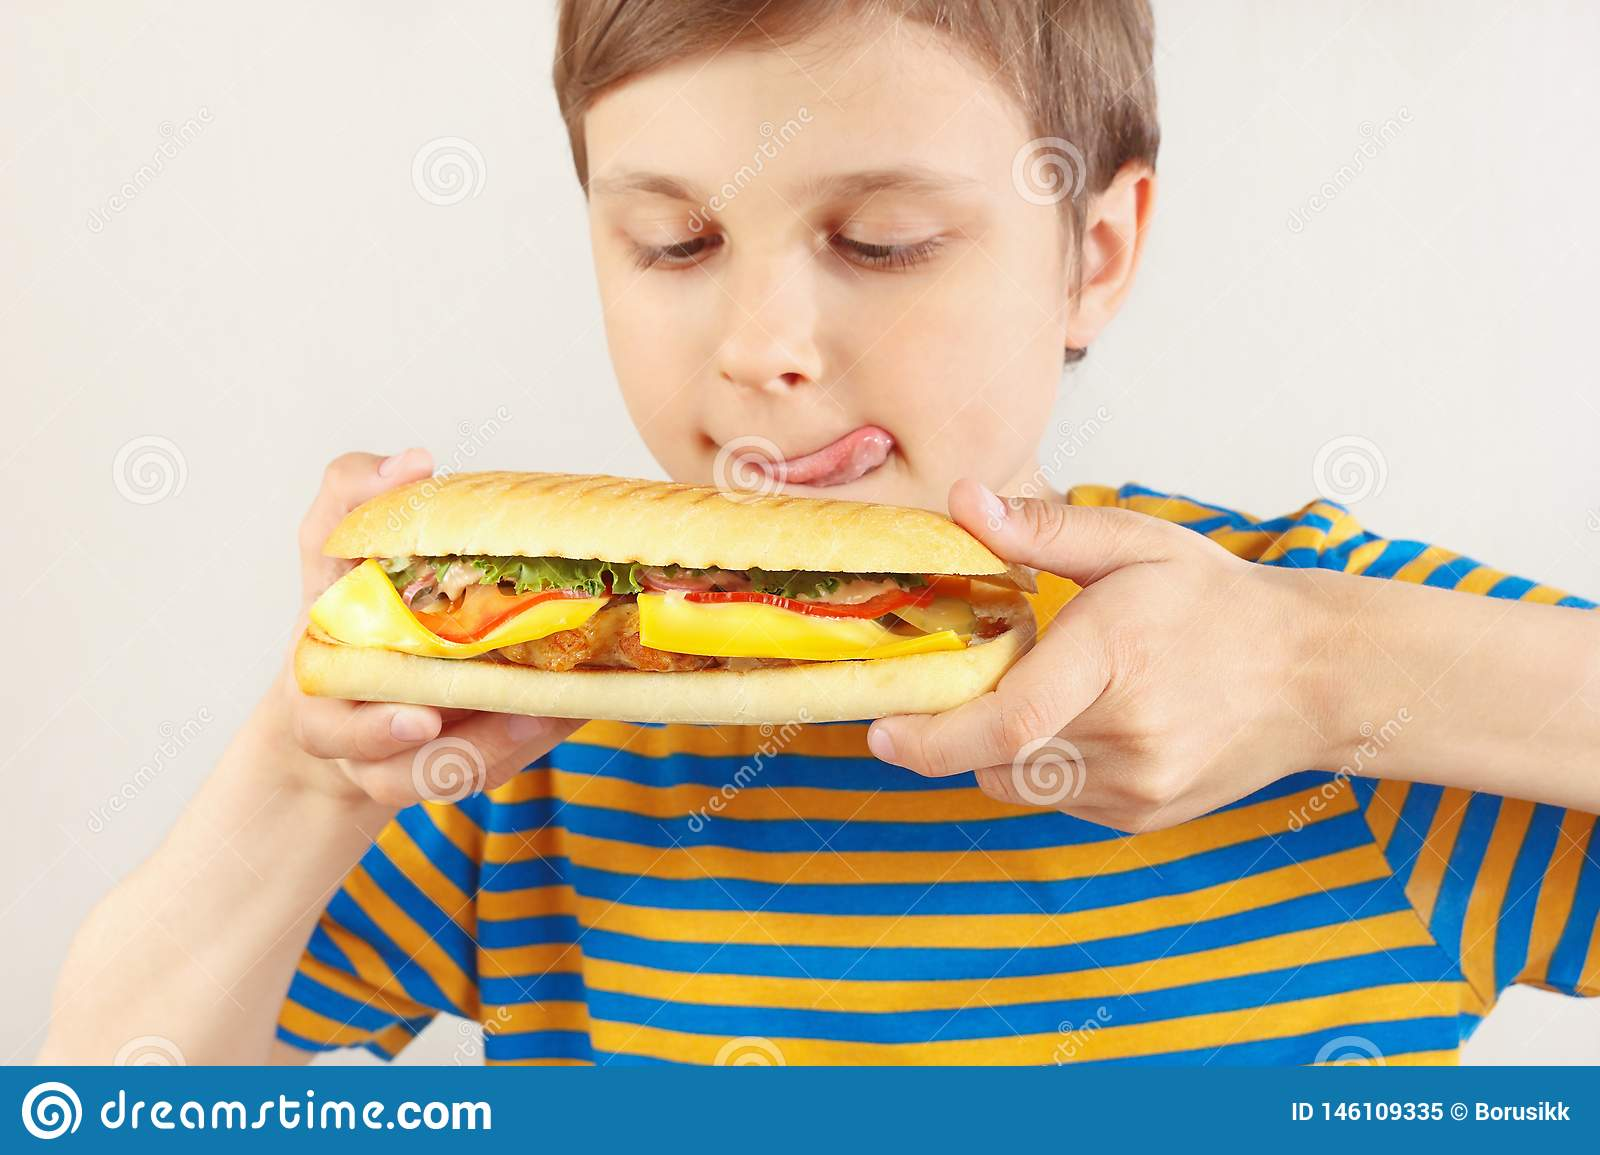 Little funny boy is licked at cheeseburger on white background